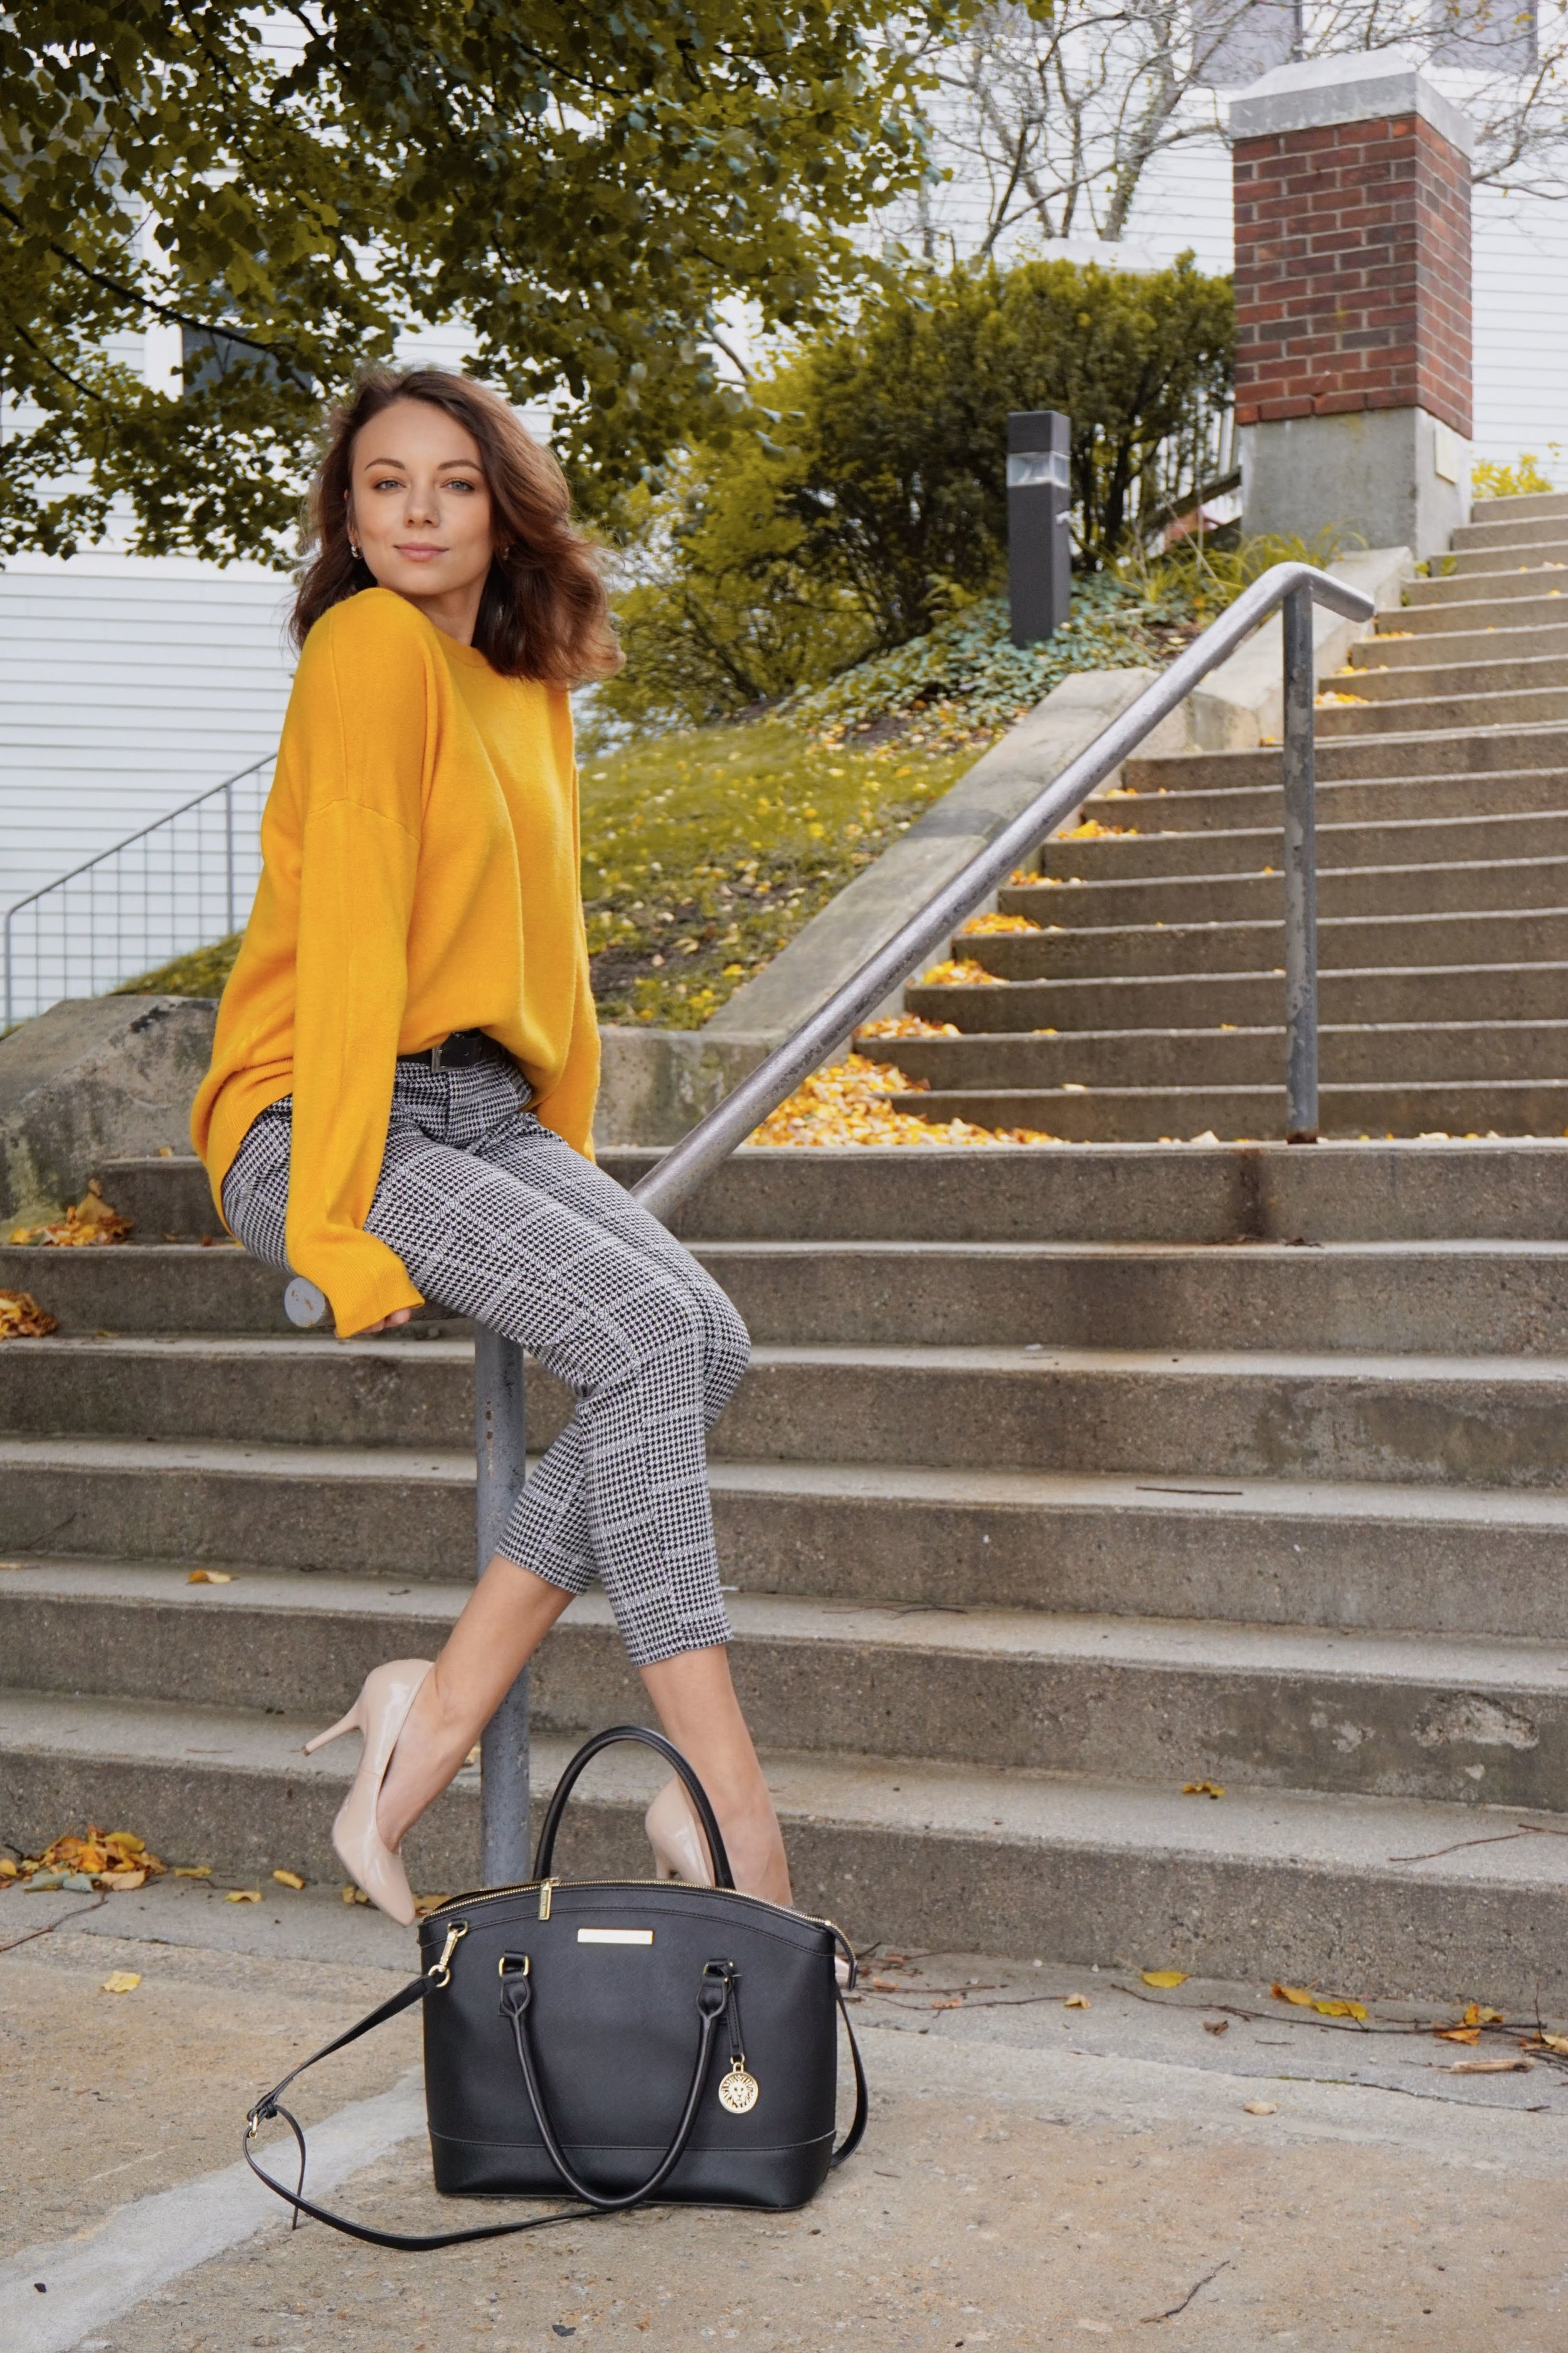 A girl sitting on a set of stairs outside, wearing a mustard colour sweater, white and black capris, nude heels, black purse.